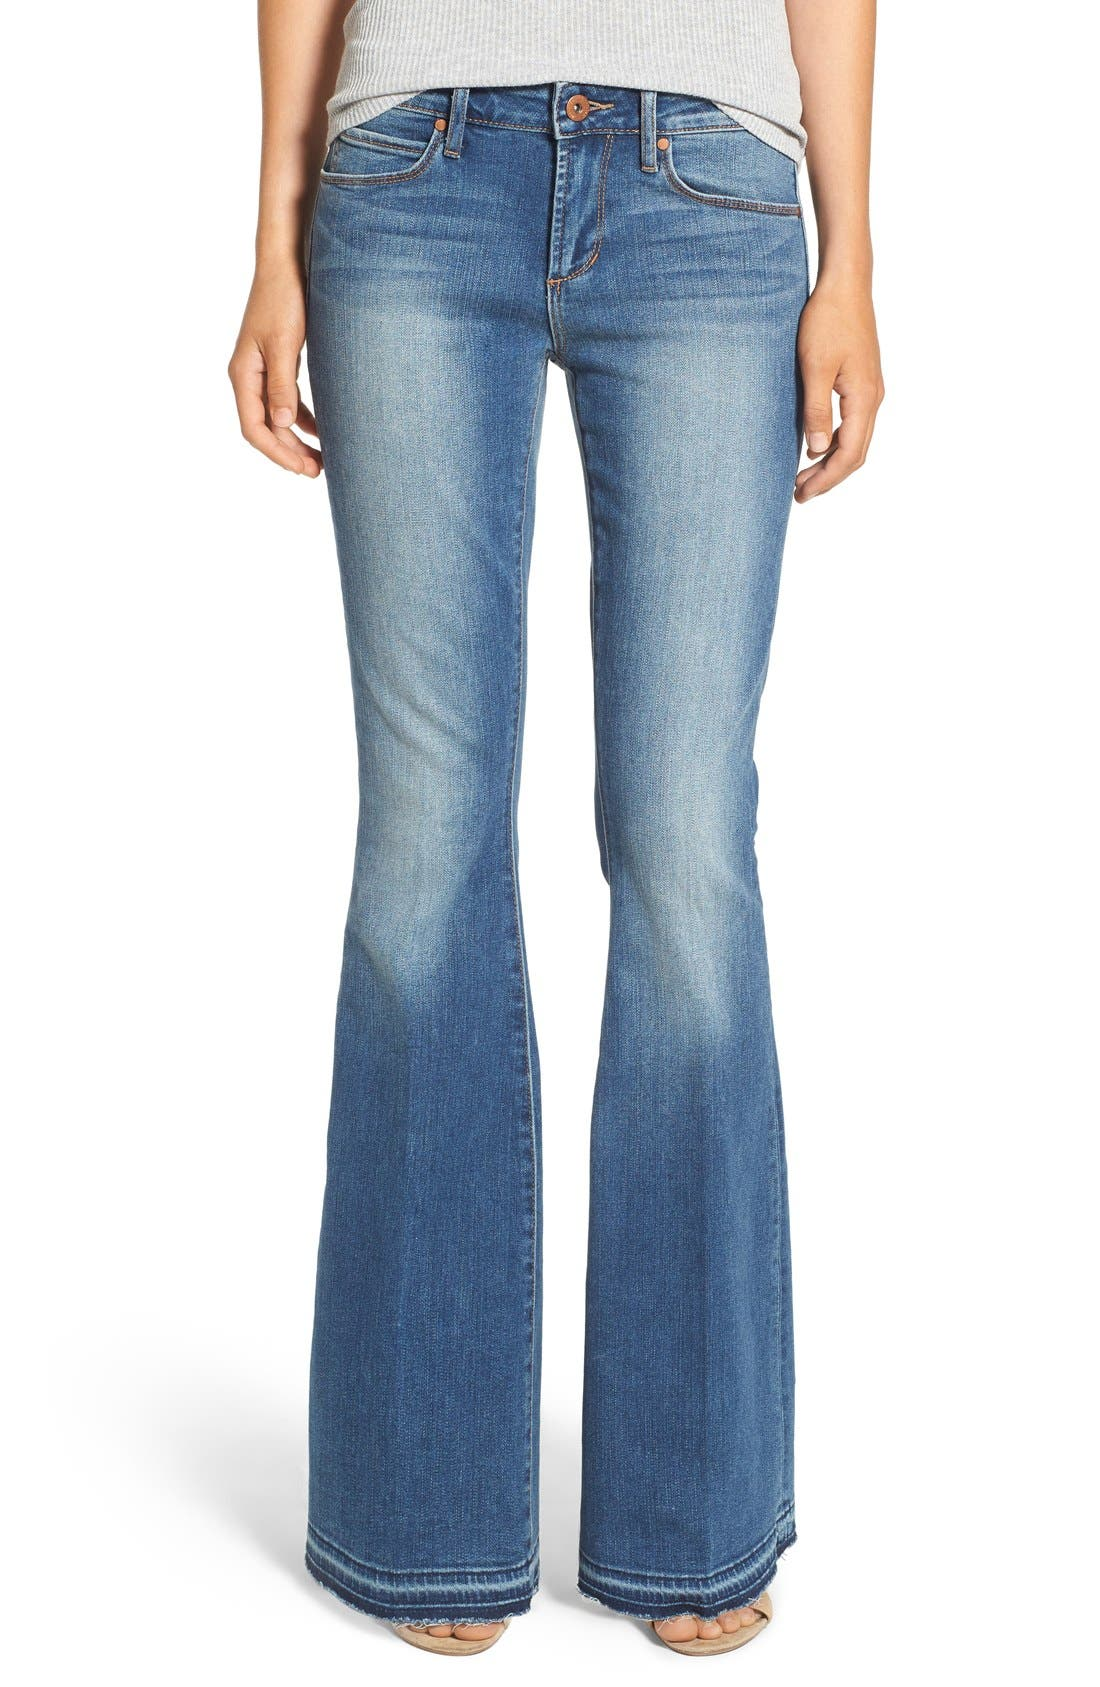 Alternate Image 1 Selected - Articles of Society 'Faith' Flare Jeans (Santana)